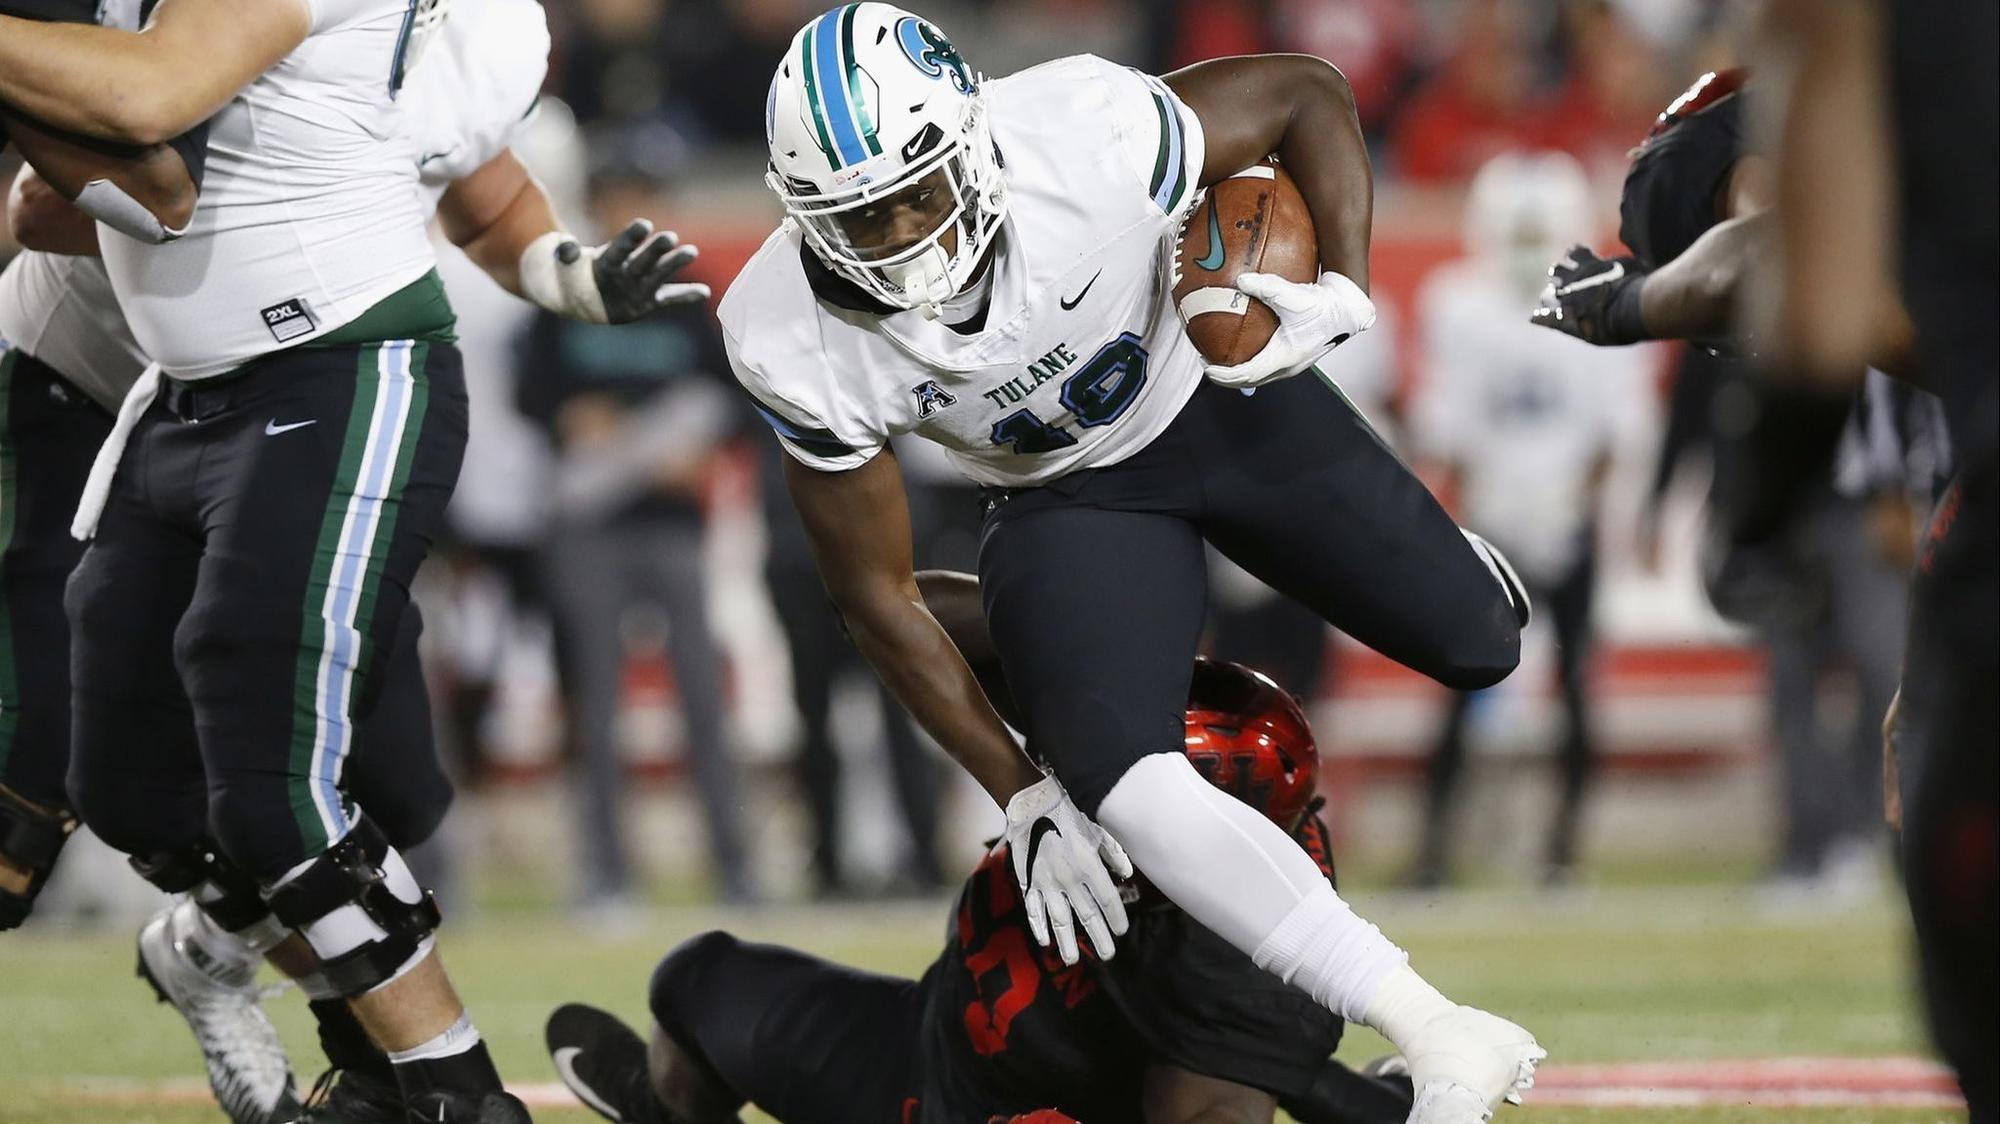 Navy looks to play spoiler as Tulane tries to get bowl eligible